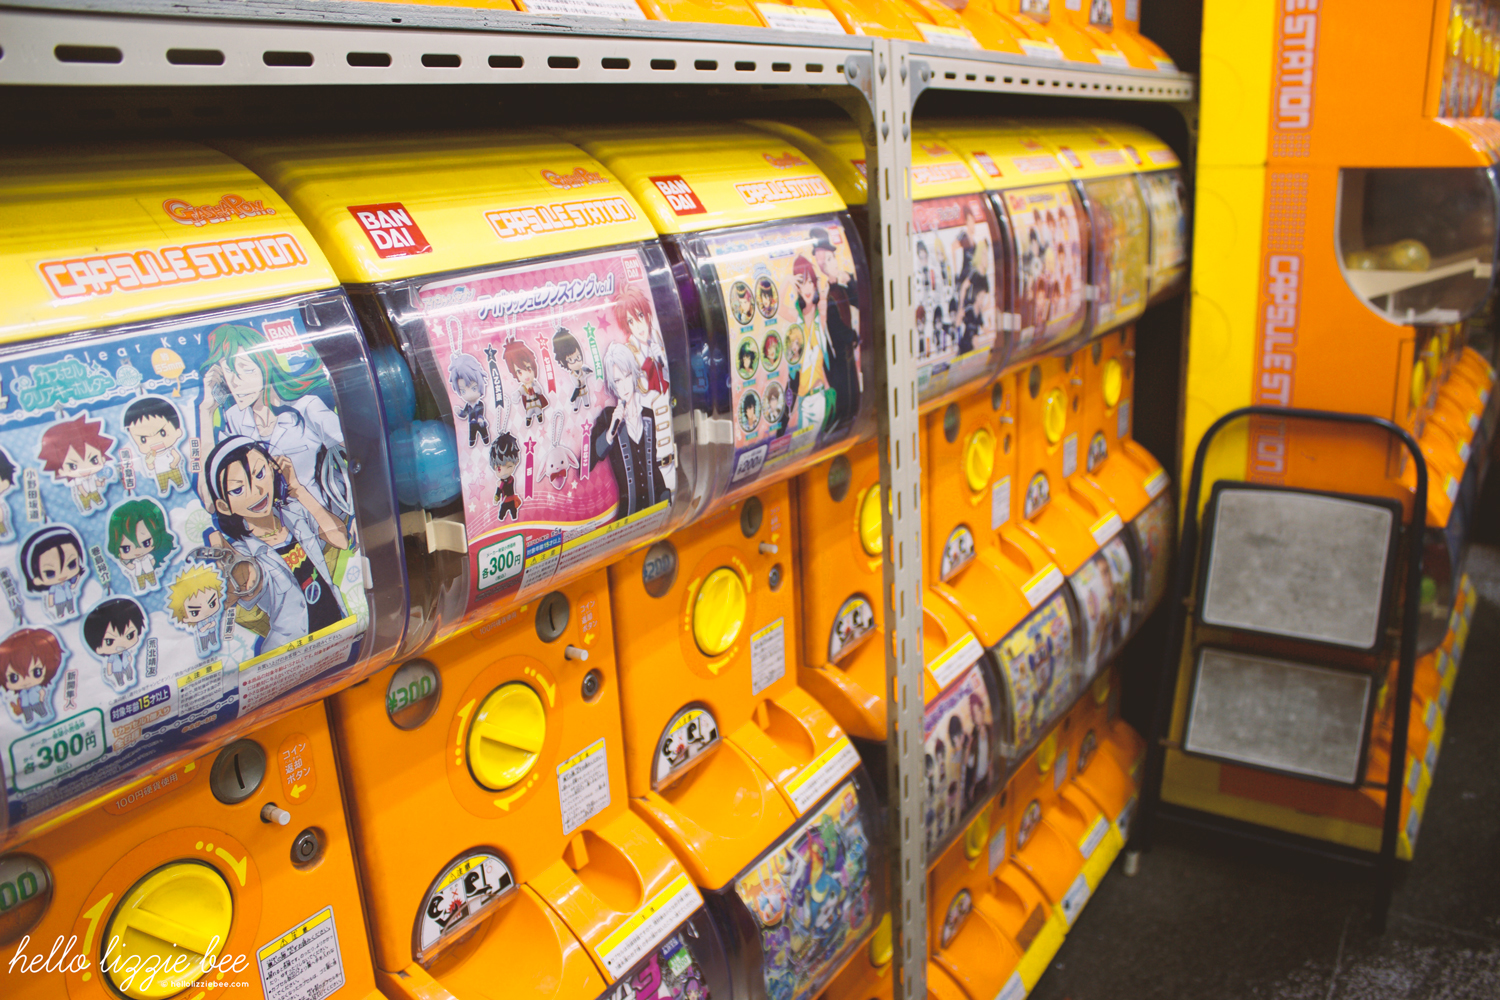 gashapon in akihabara, capsule machine